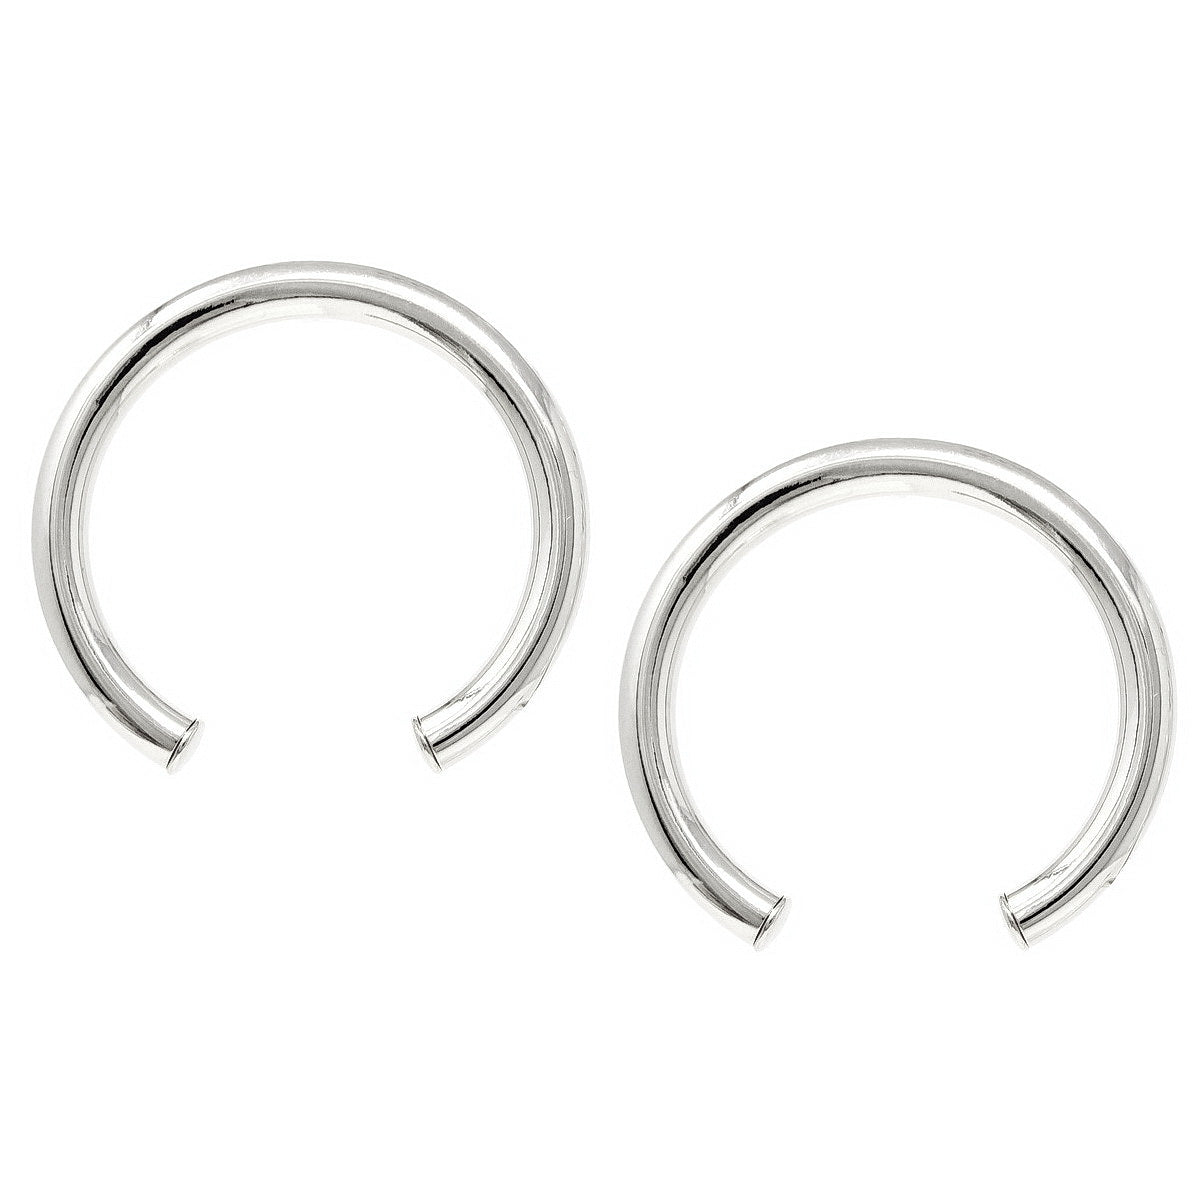 Arched Metal Tube Earrings